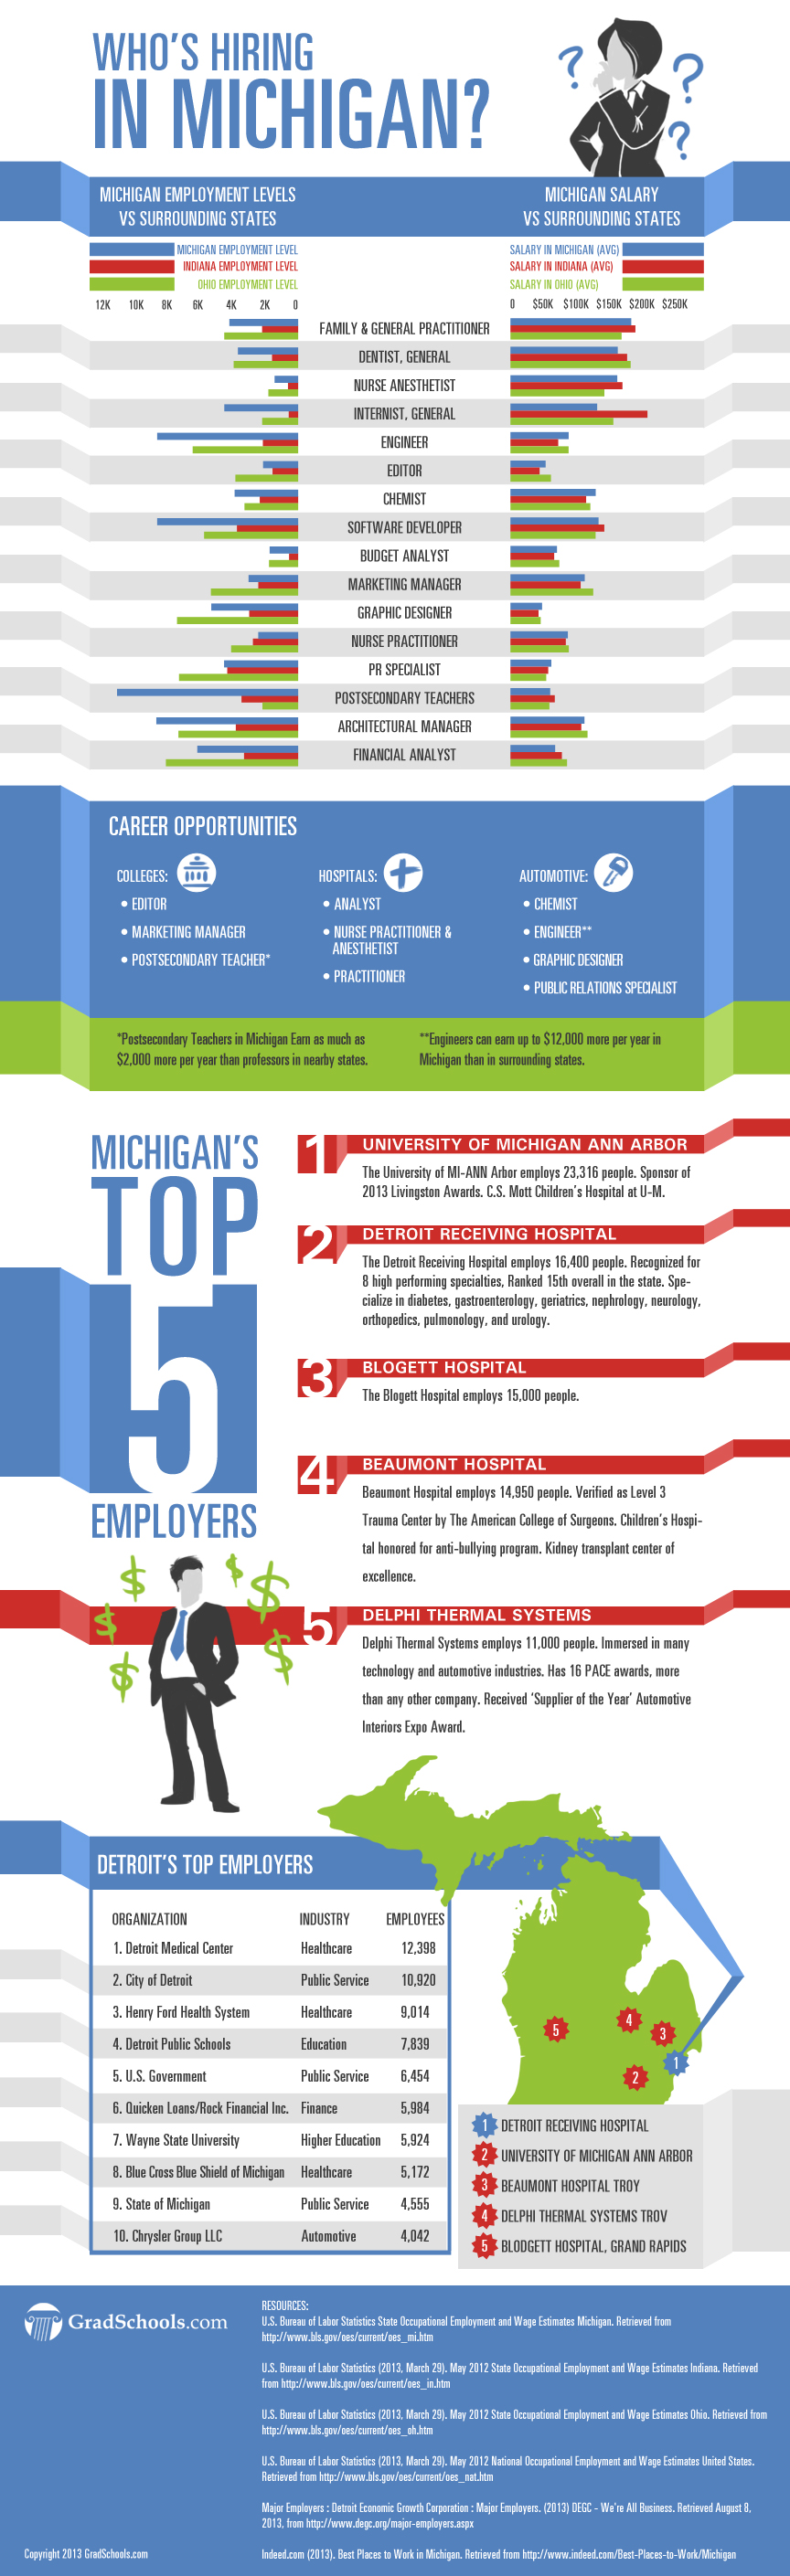 how to create employment opportunities